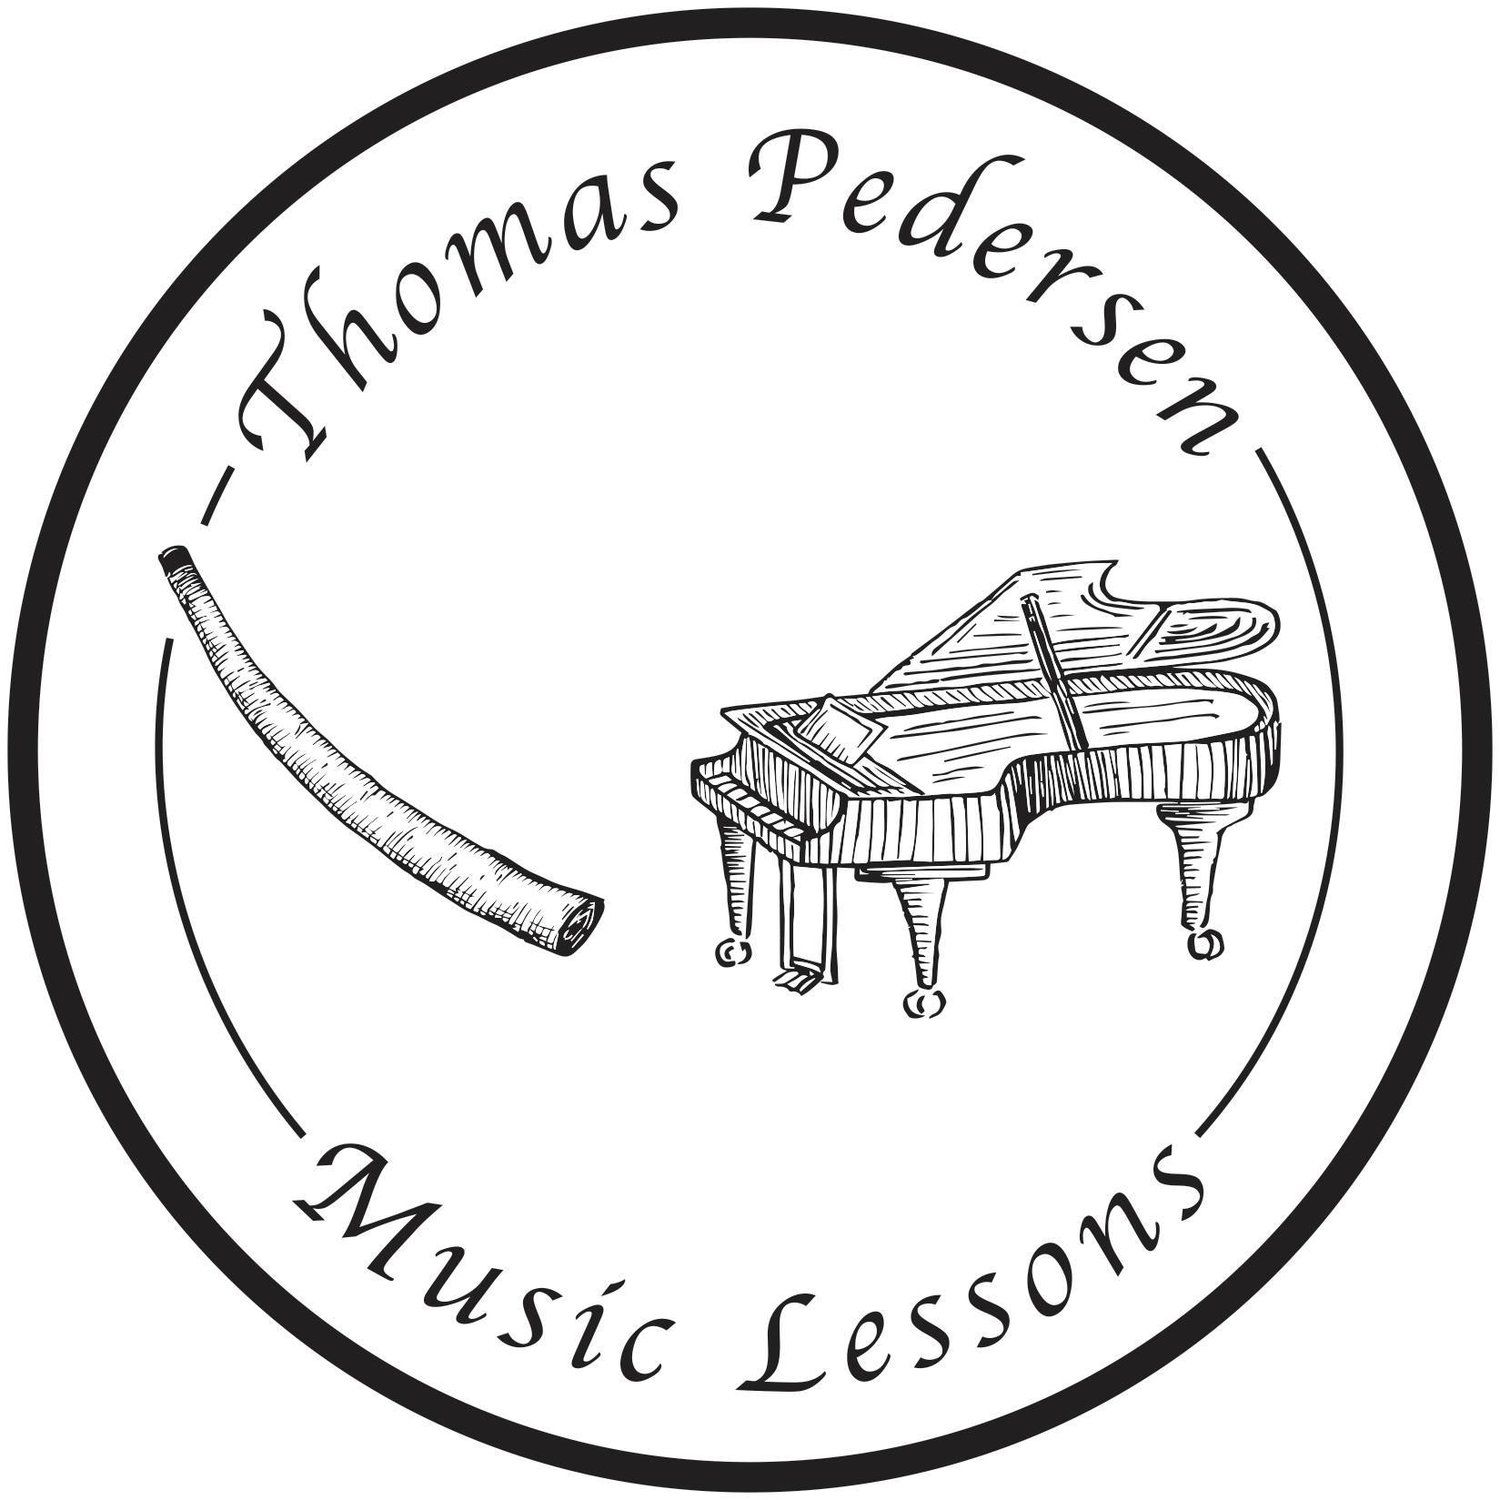 Thomas Pedersen Music Lessons